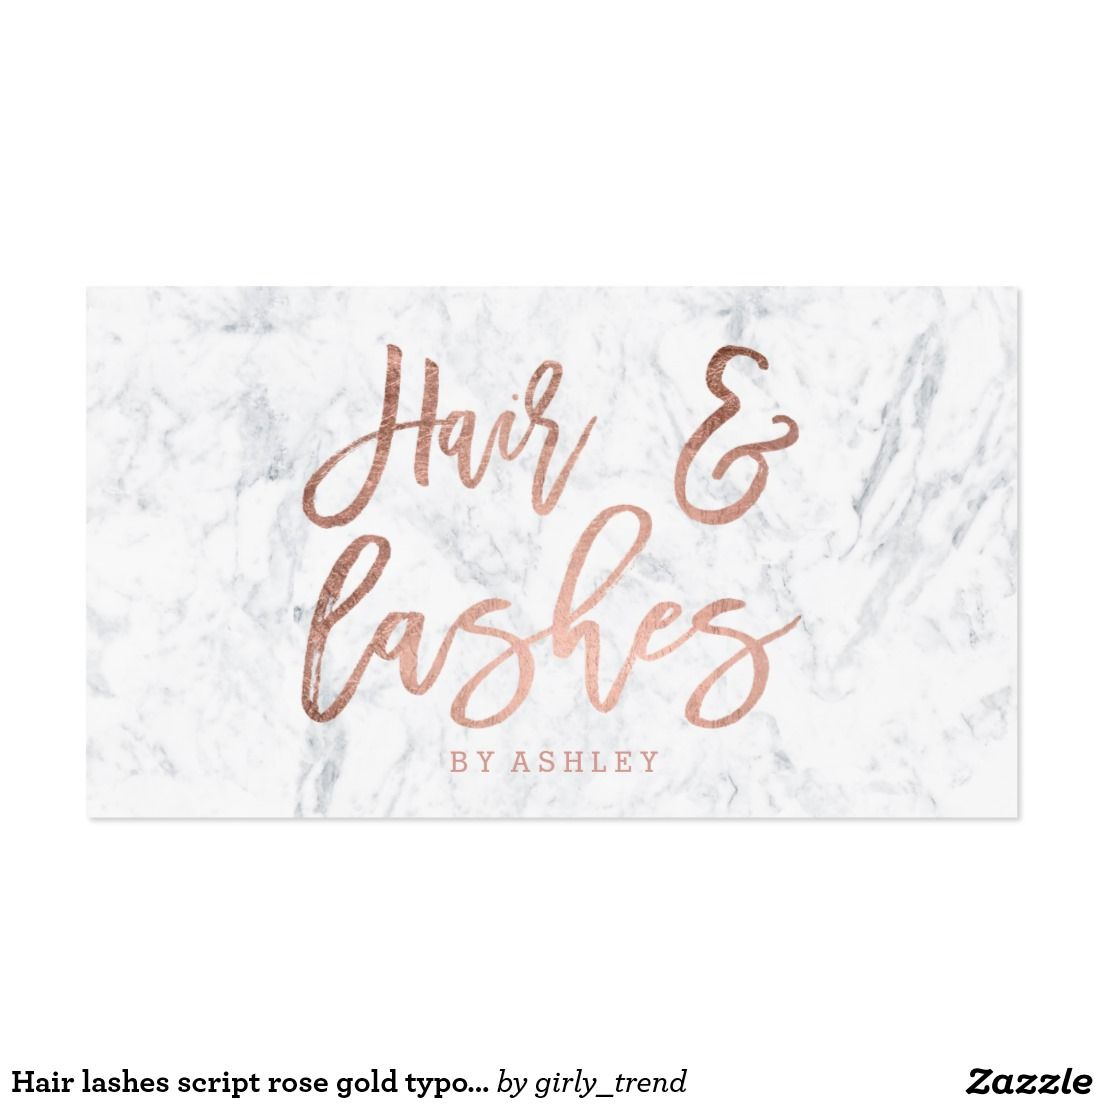 Hair lashes script rose gold typography marble business card ...